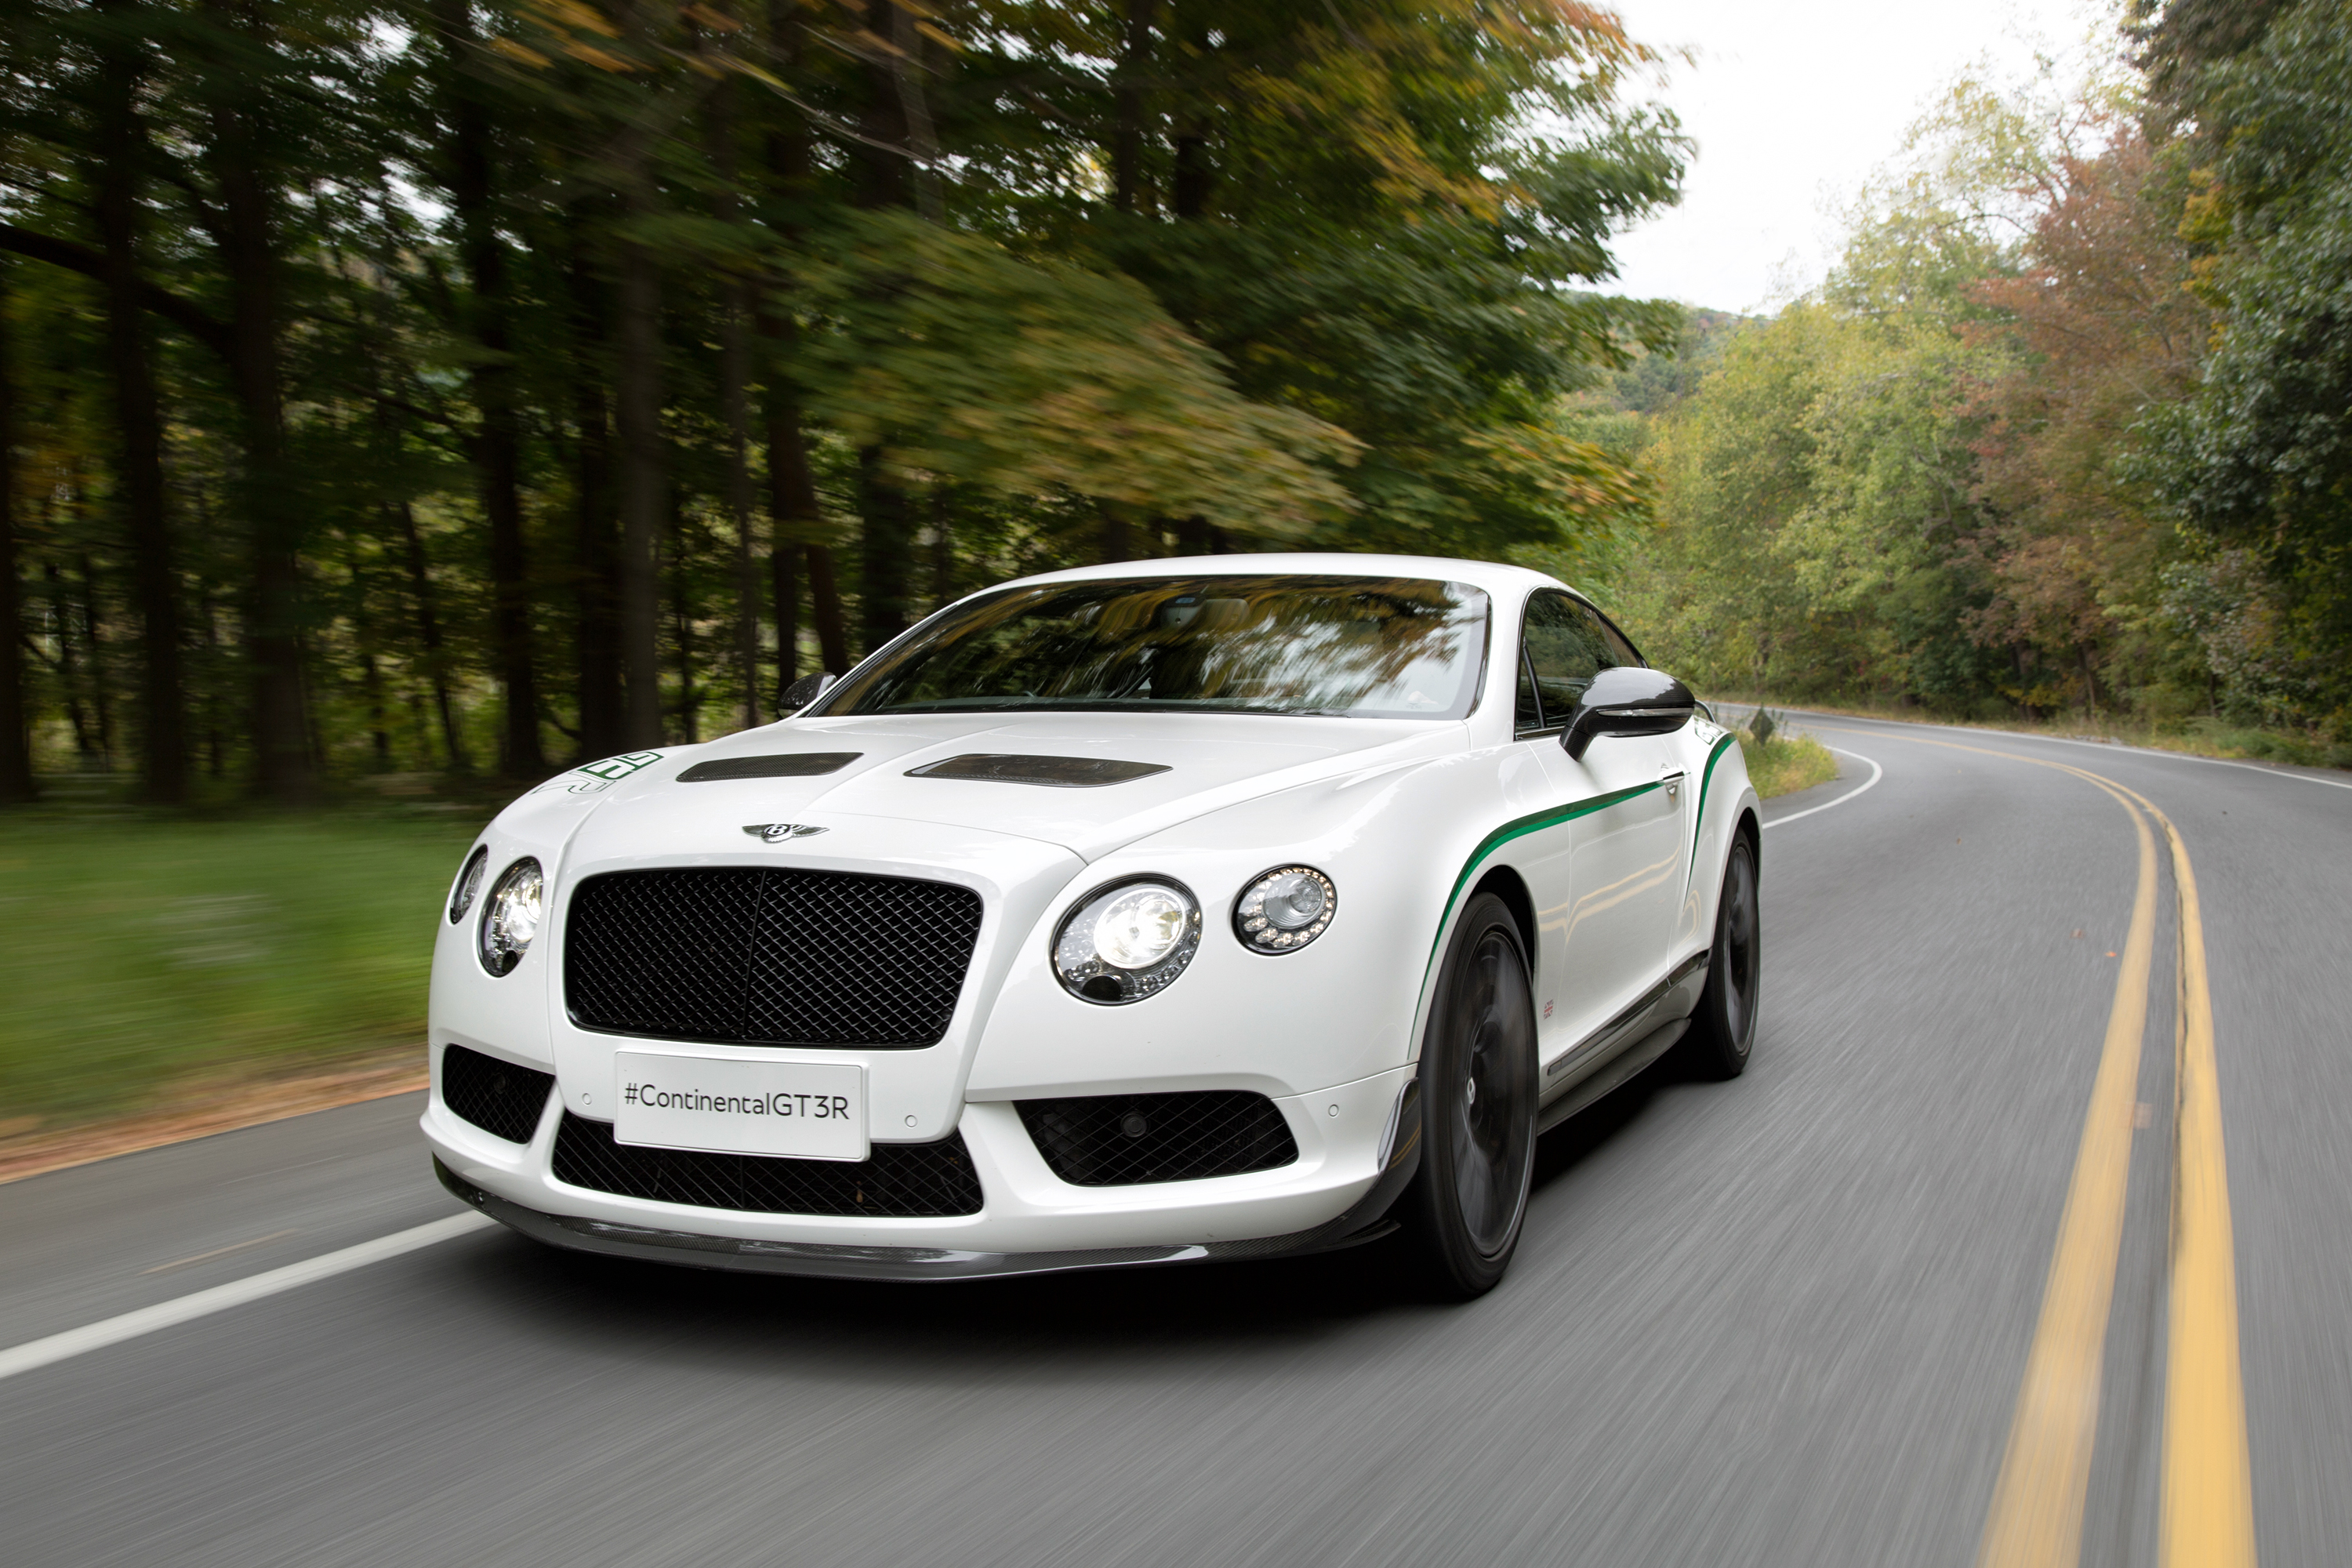 Bentley Continental Gt3 R Review Price Specs And 0 60 Time Evo